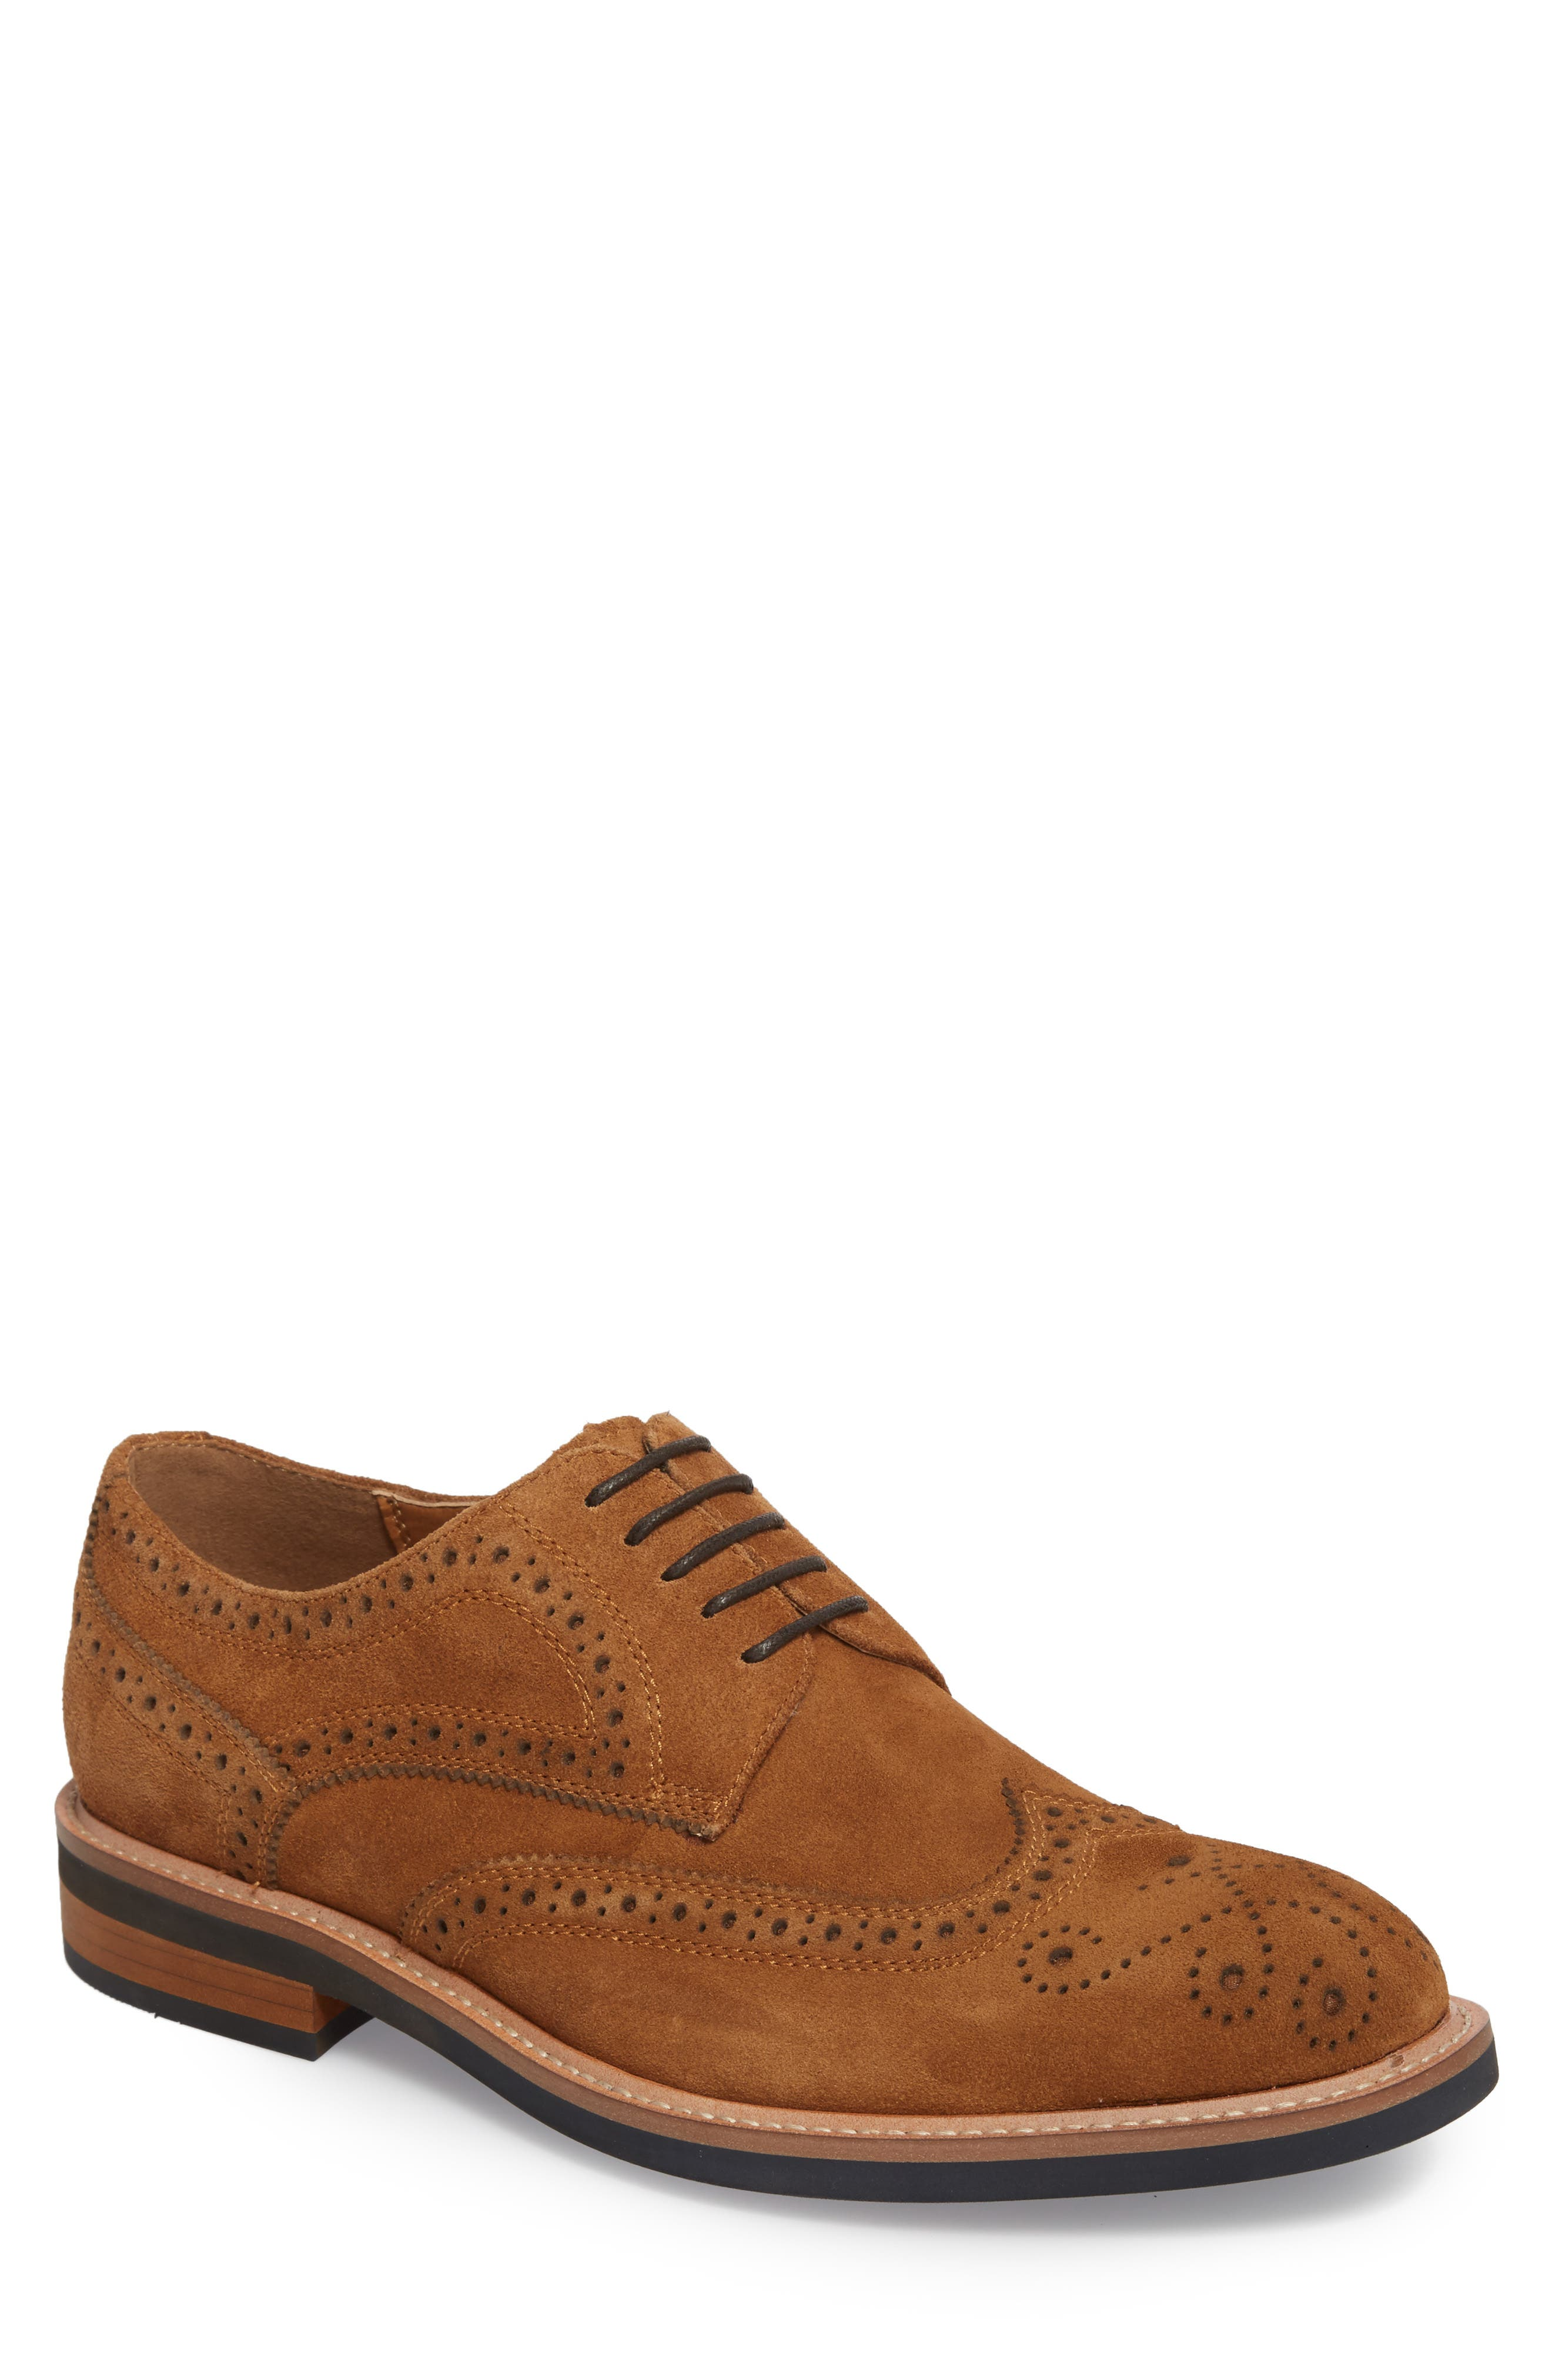 Kenneth Cole Reaction Wingtip,                             Main thumbnail 2, color,